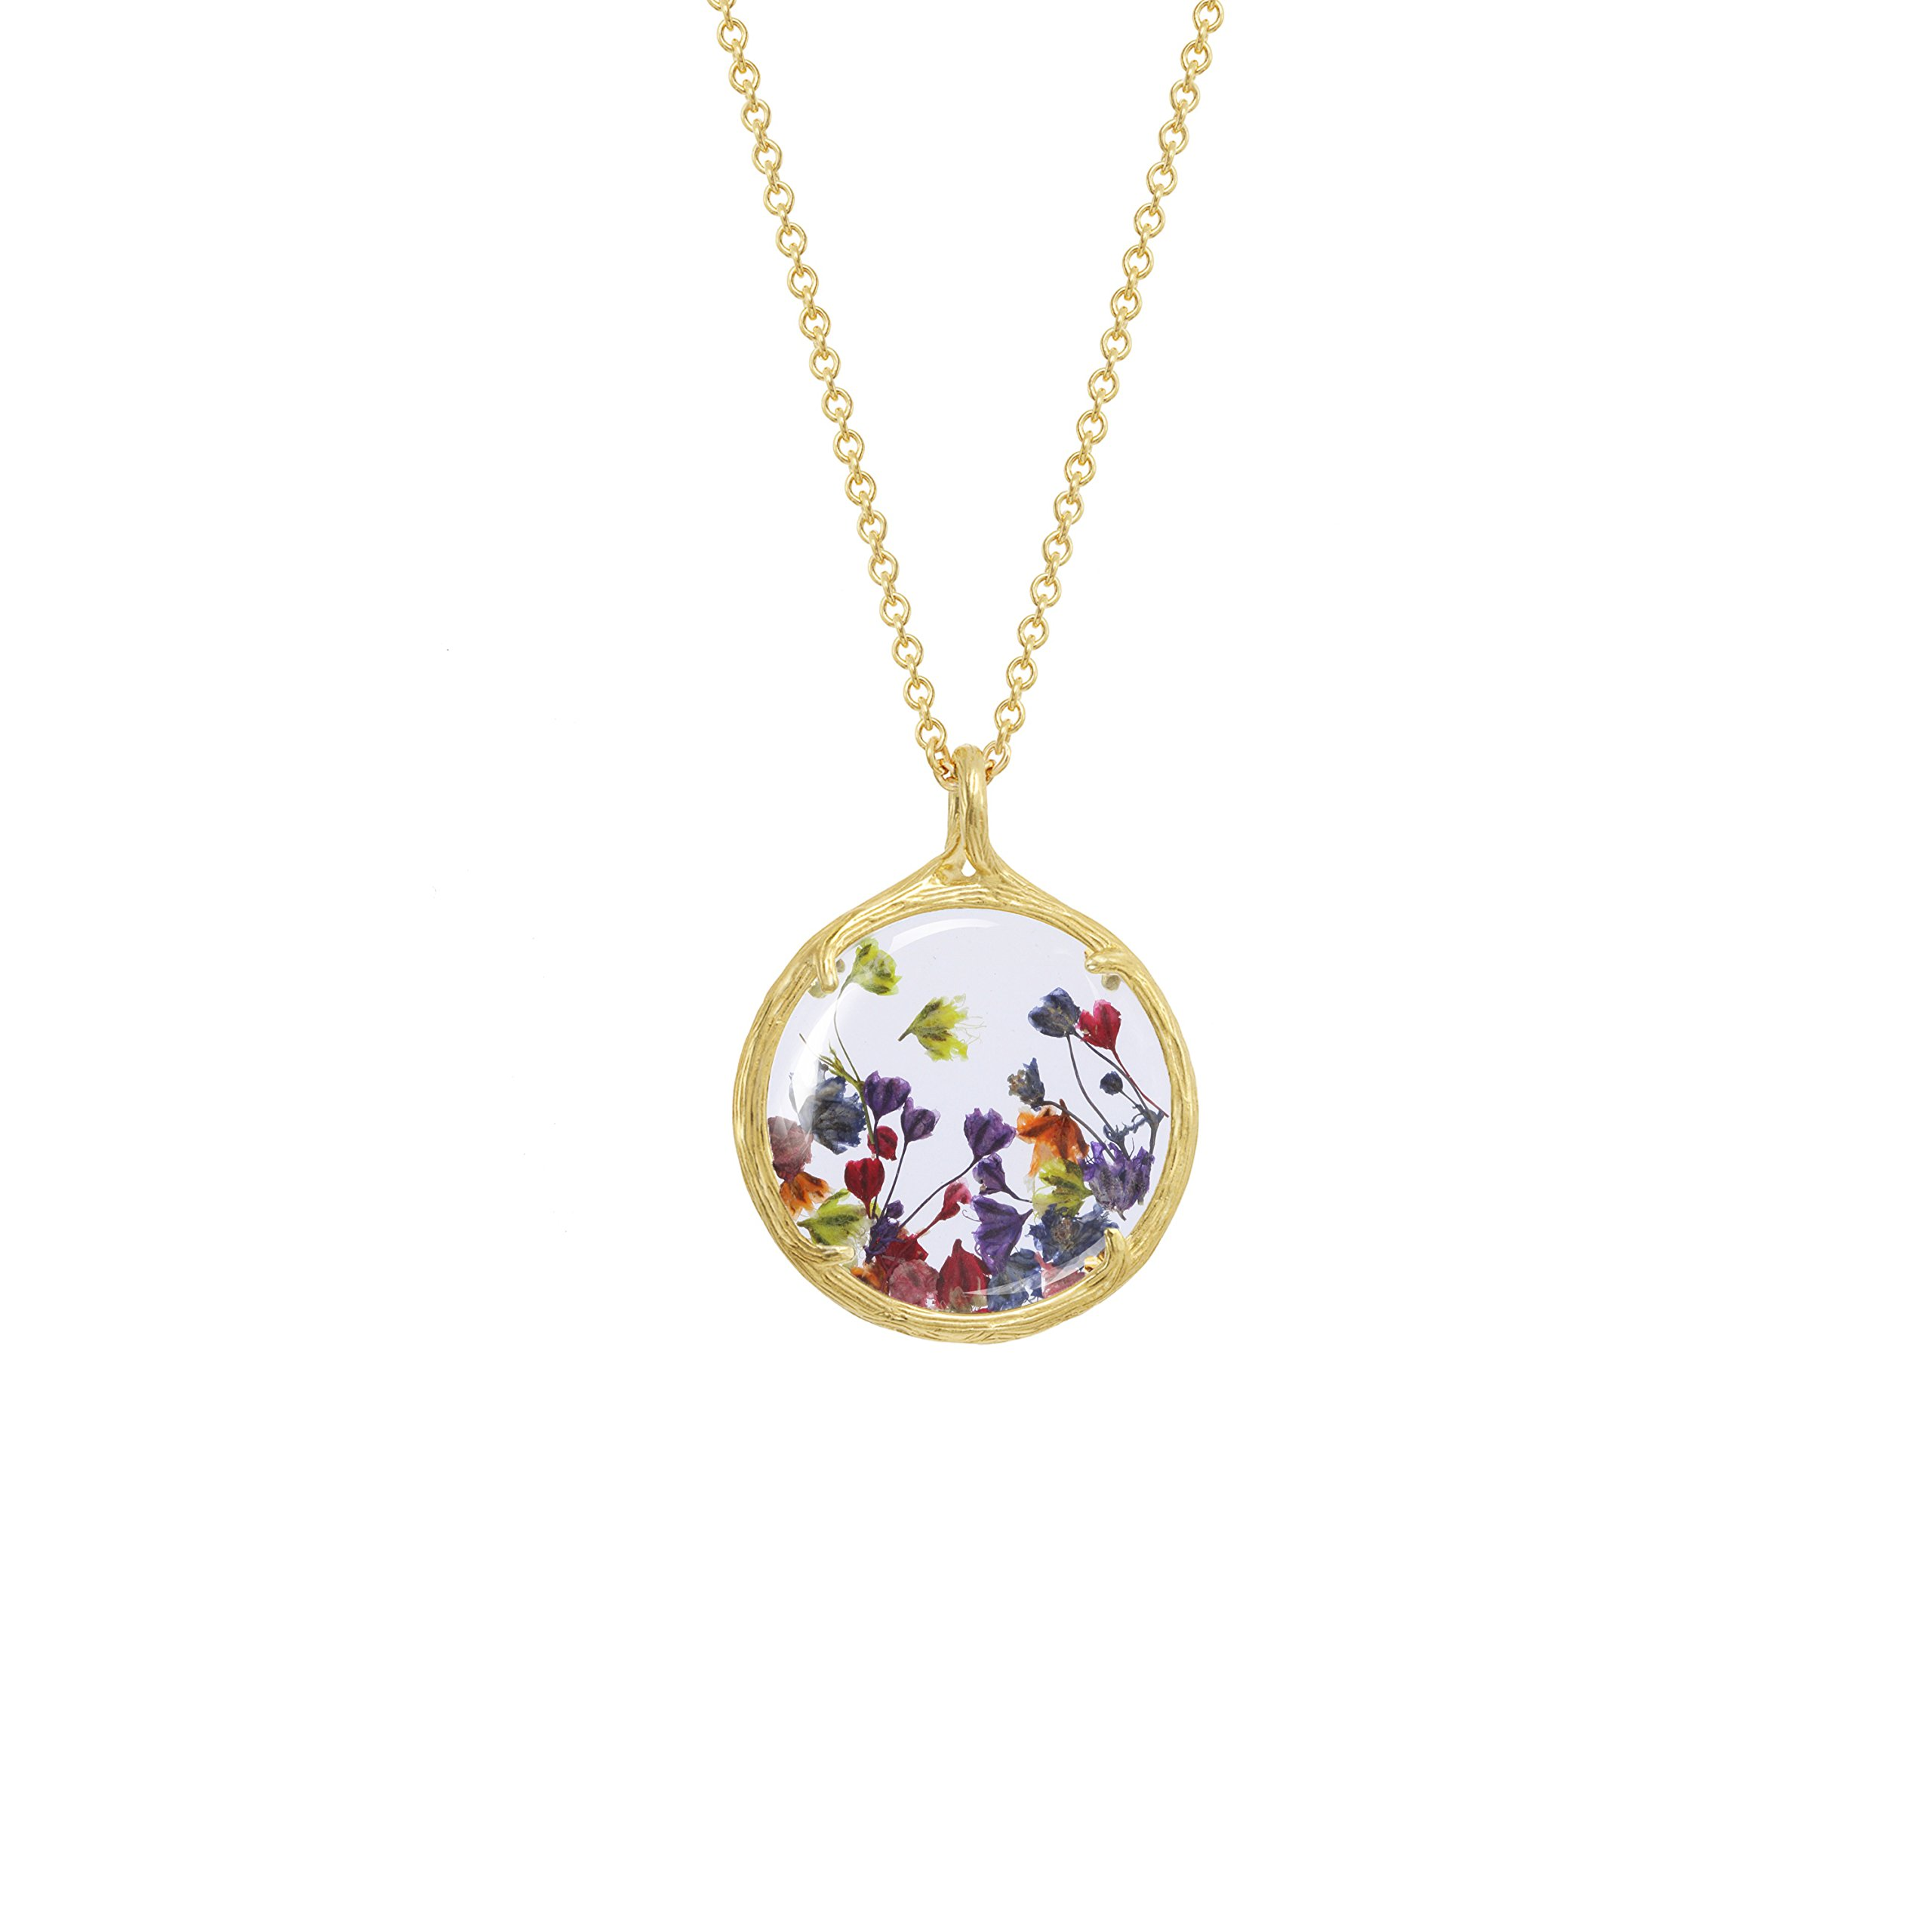 Botanical Pendant Necklace with Delicate Dried Flowers in Glass Charm (Rainbow Baby's Breath Flowers, gold-plated-base)